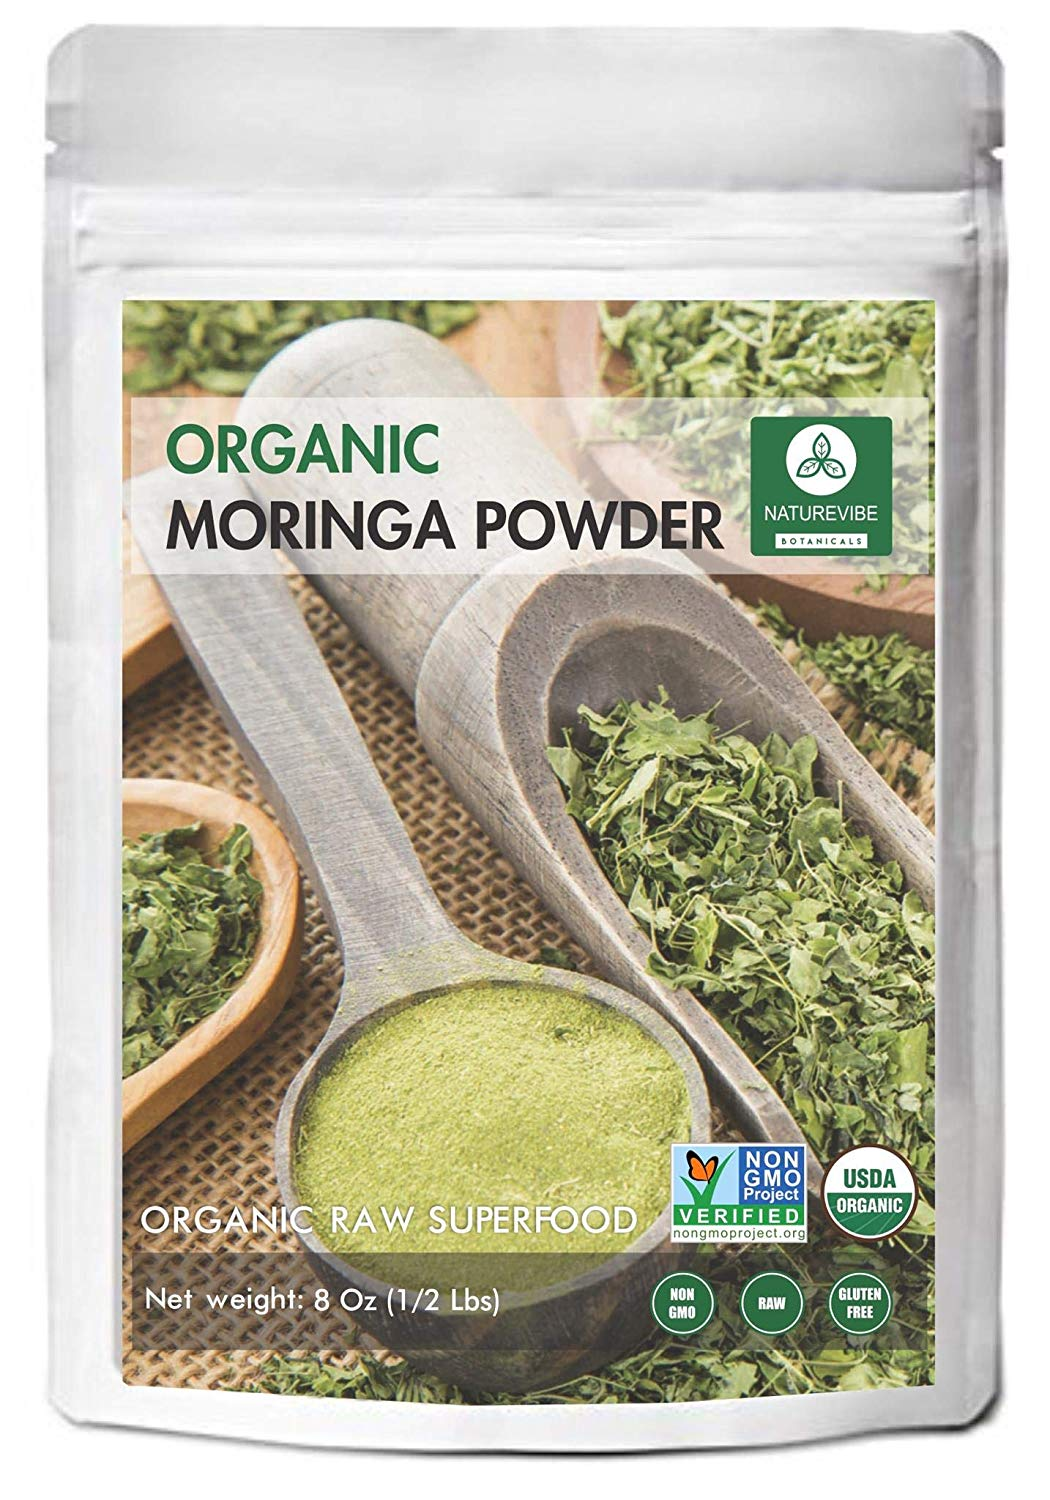 Review of -  Naturevibe Botanicals Organic Premium Moringa Green Leaf Powder for Weight Loss